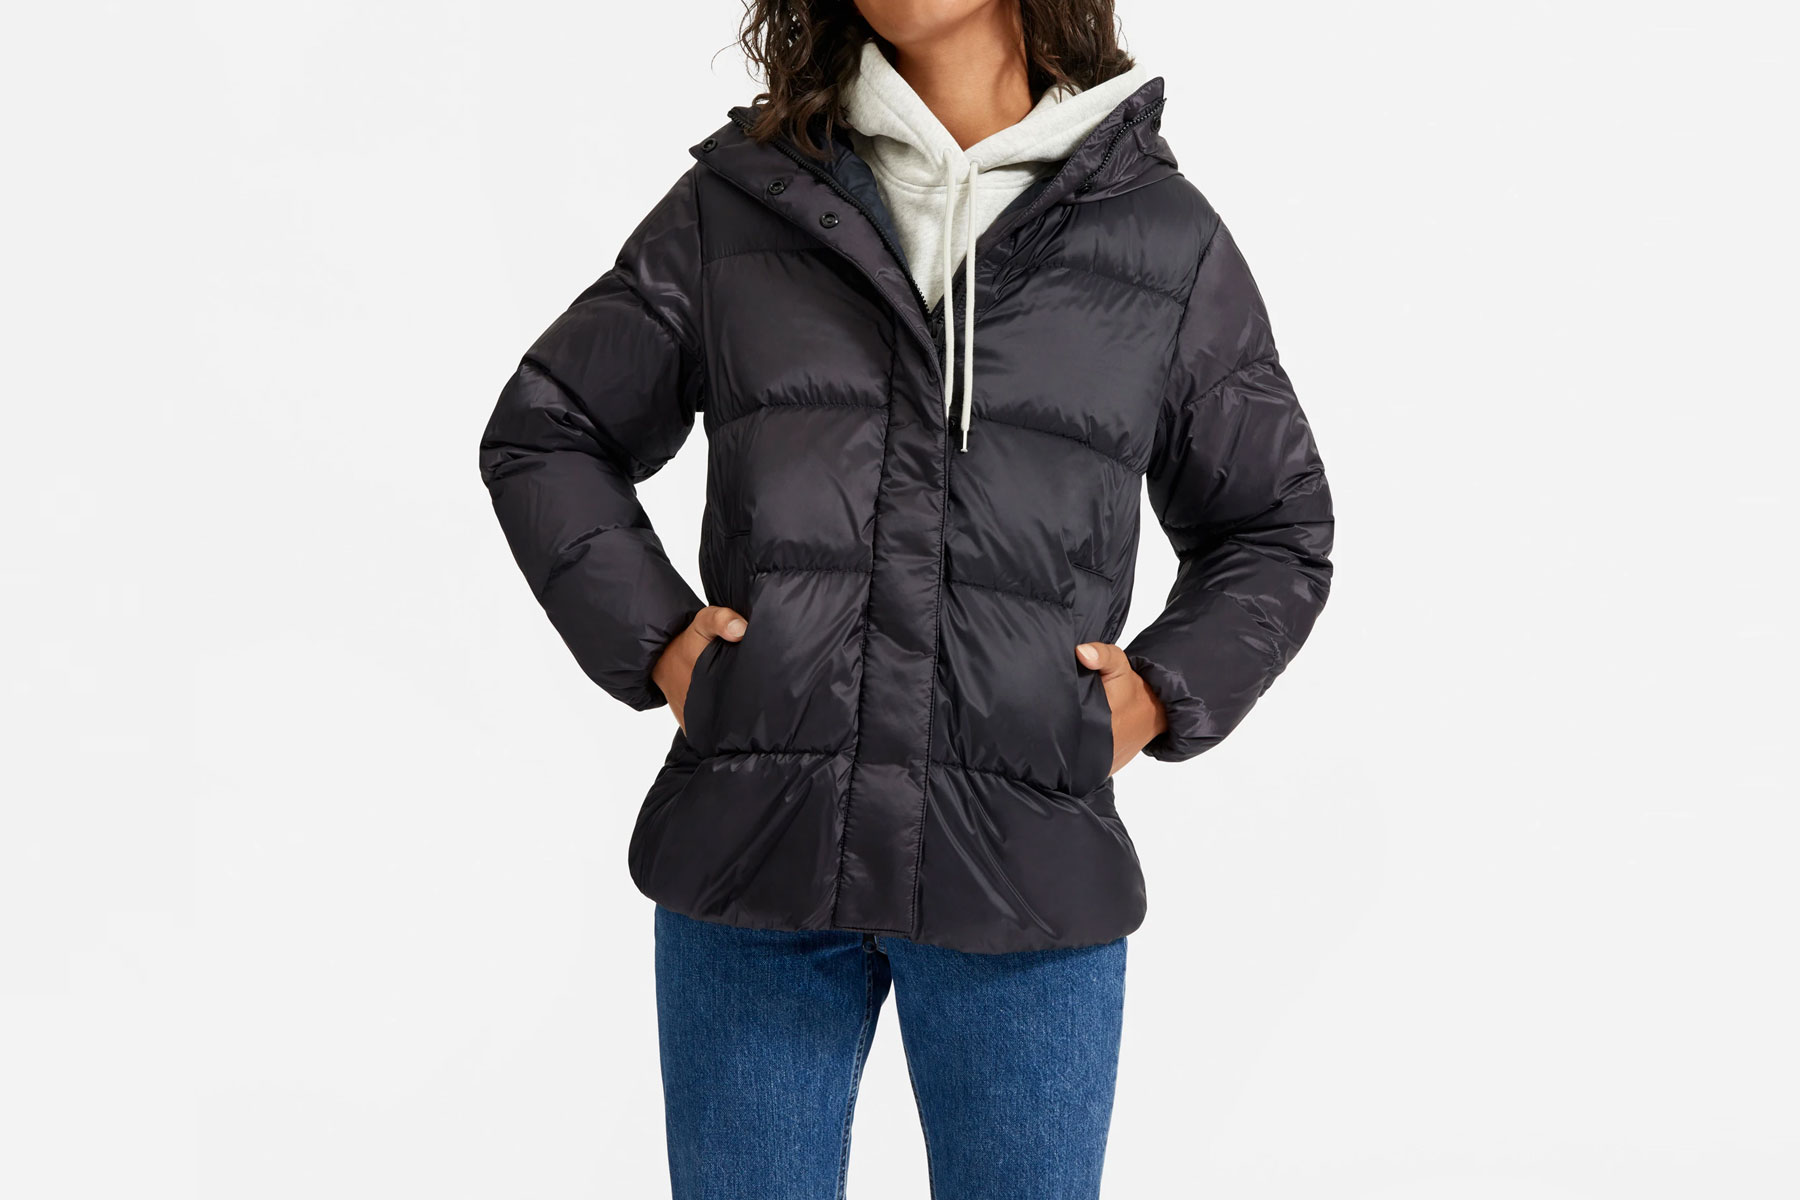 Black short puffer jacket